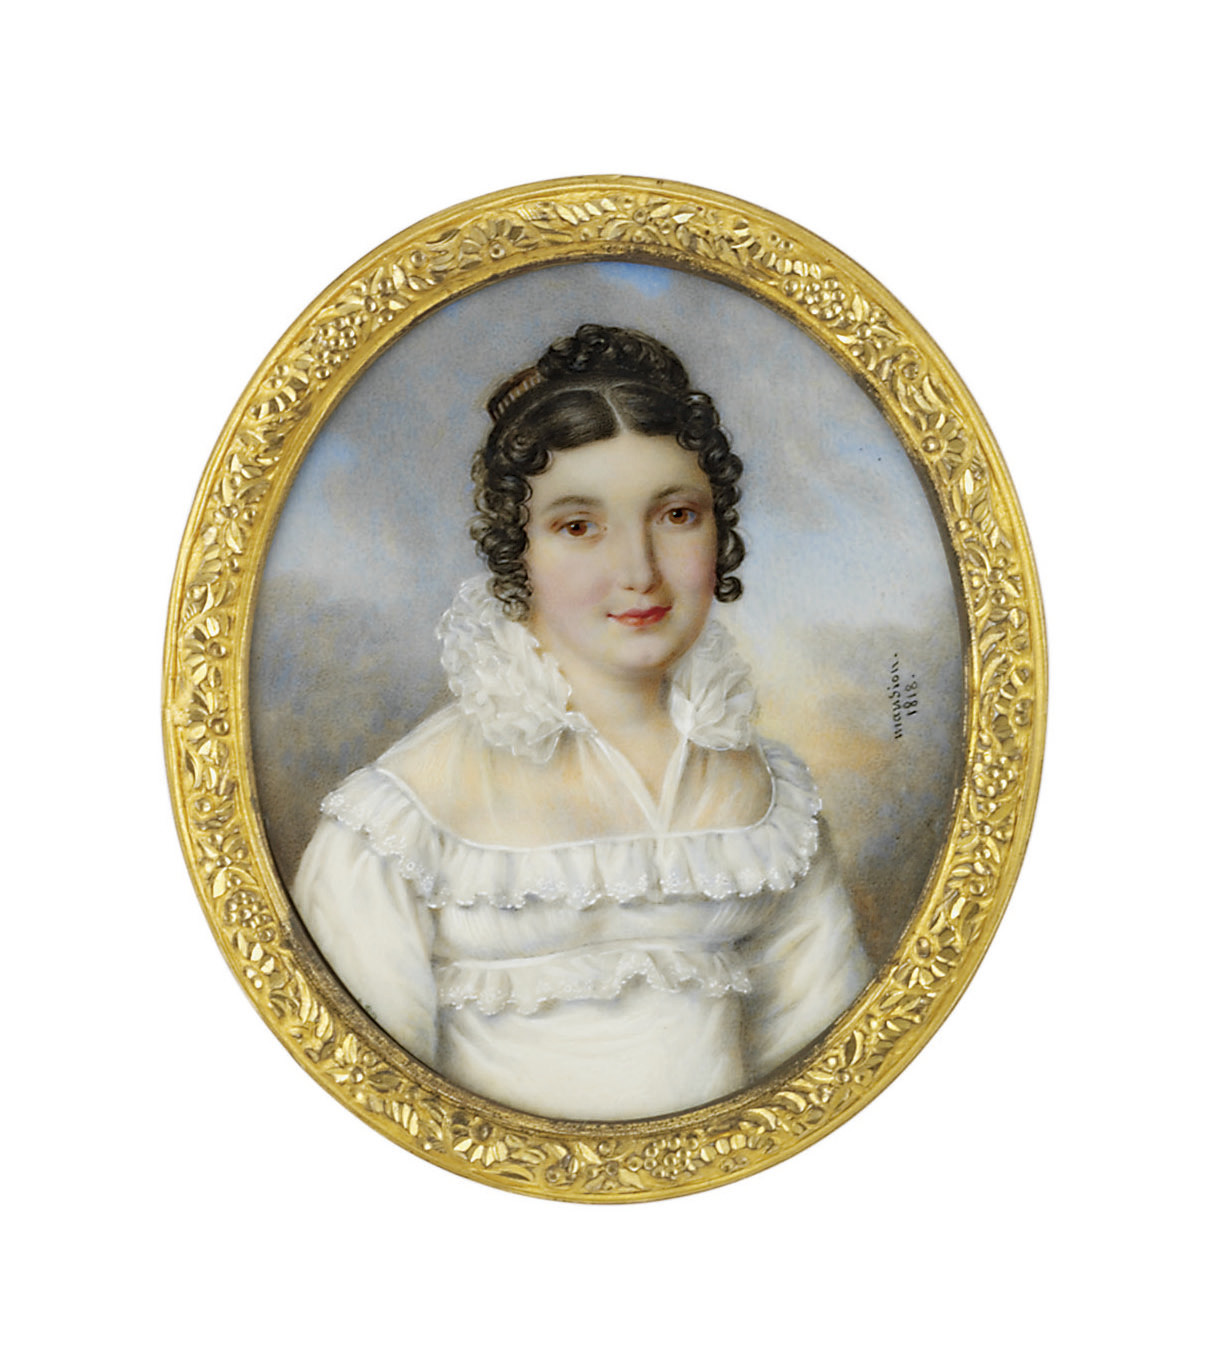 A young lady, in white mull evening gown with frills at the neckline and empire waist, white gauze collar with a Renaissance-inspired ruff; sky background